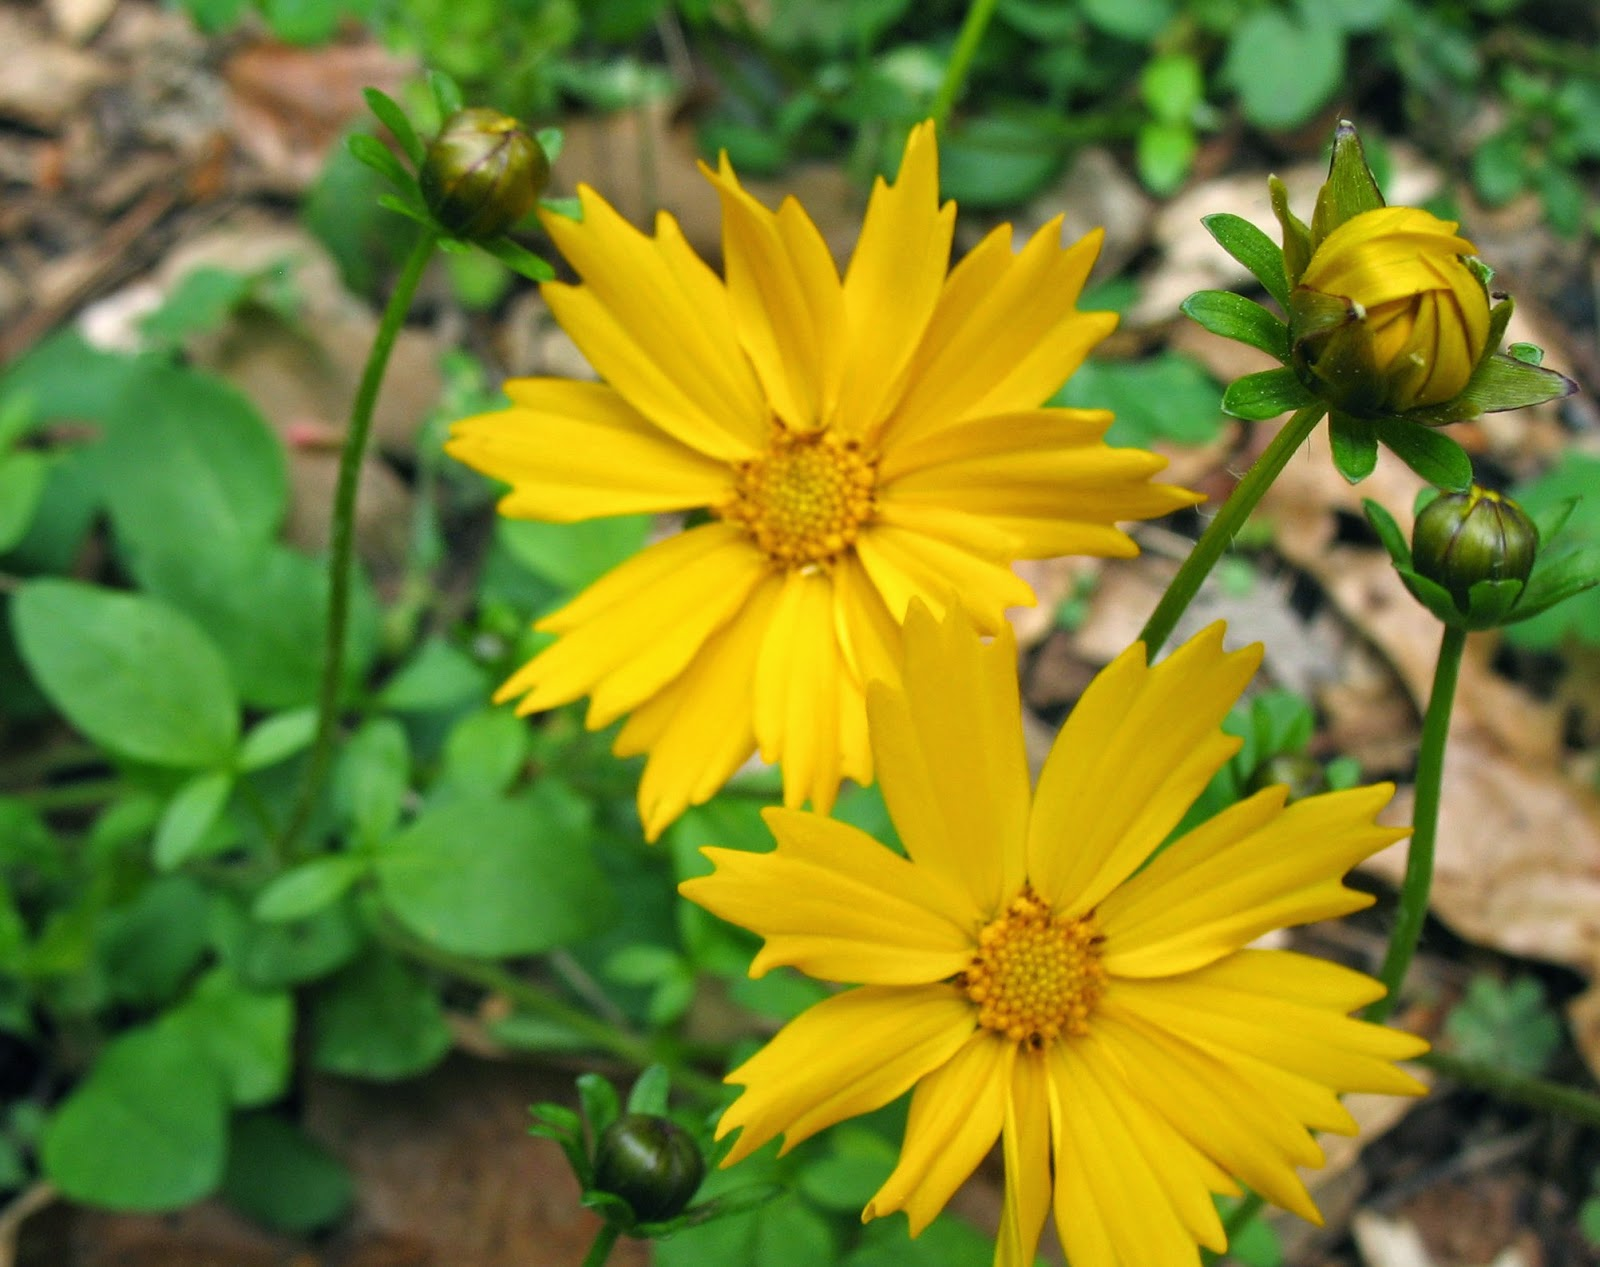 Georgia Garden: Using Georgia Native Plants: Awesome, Easy, Native